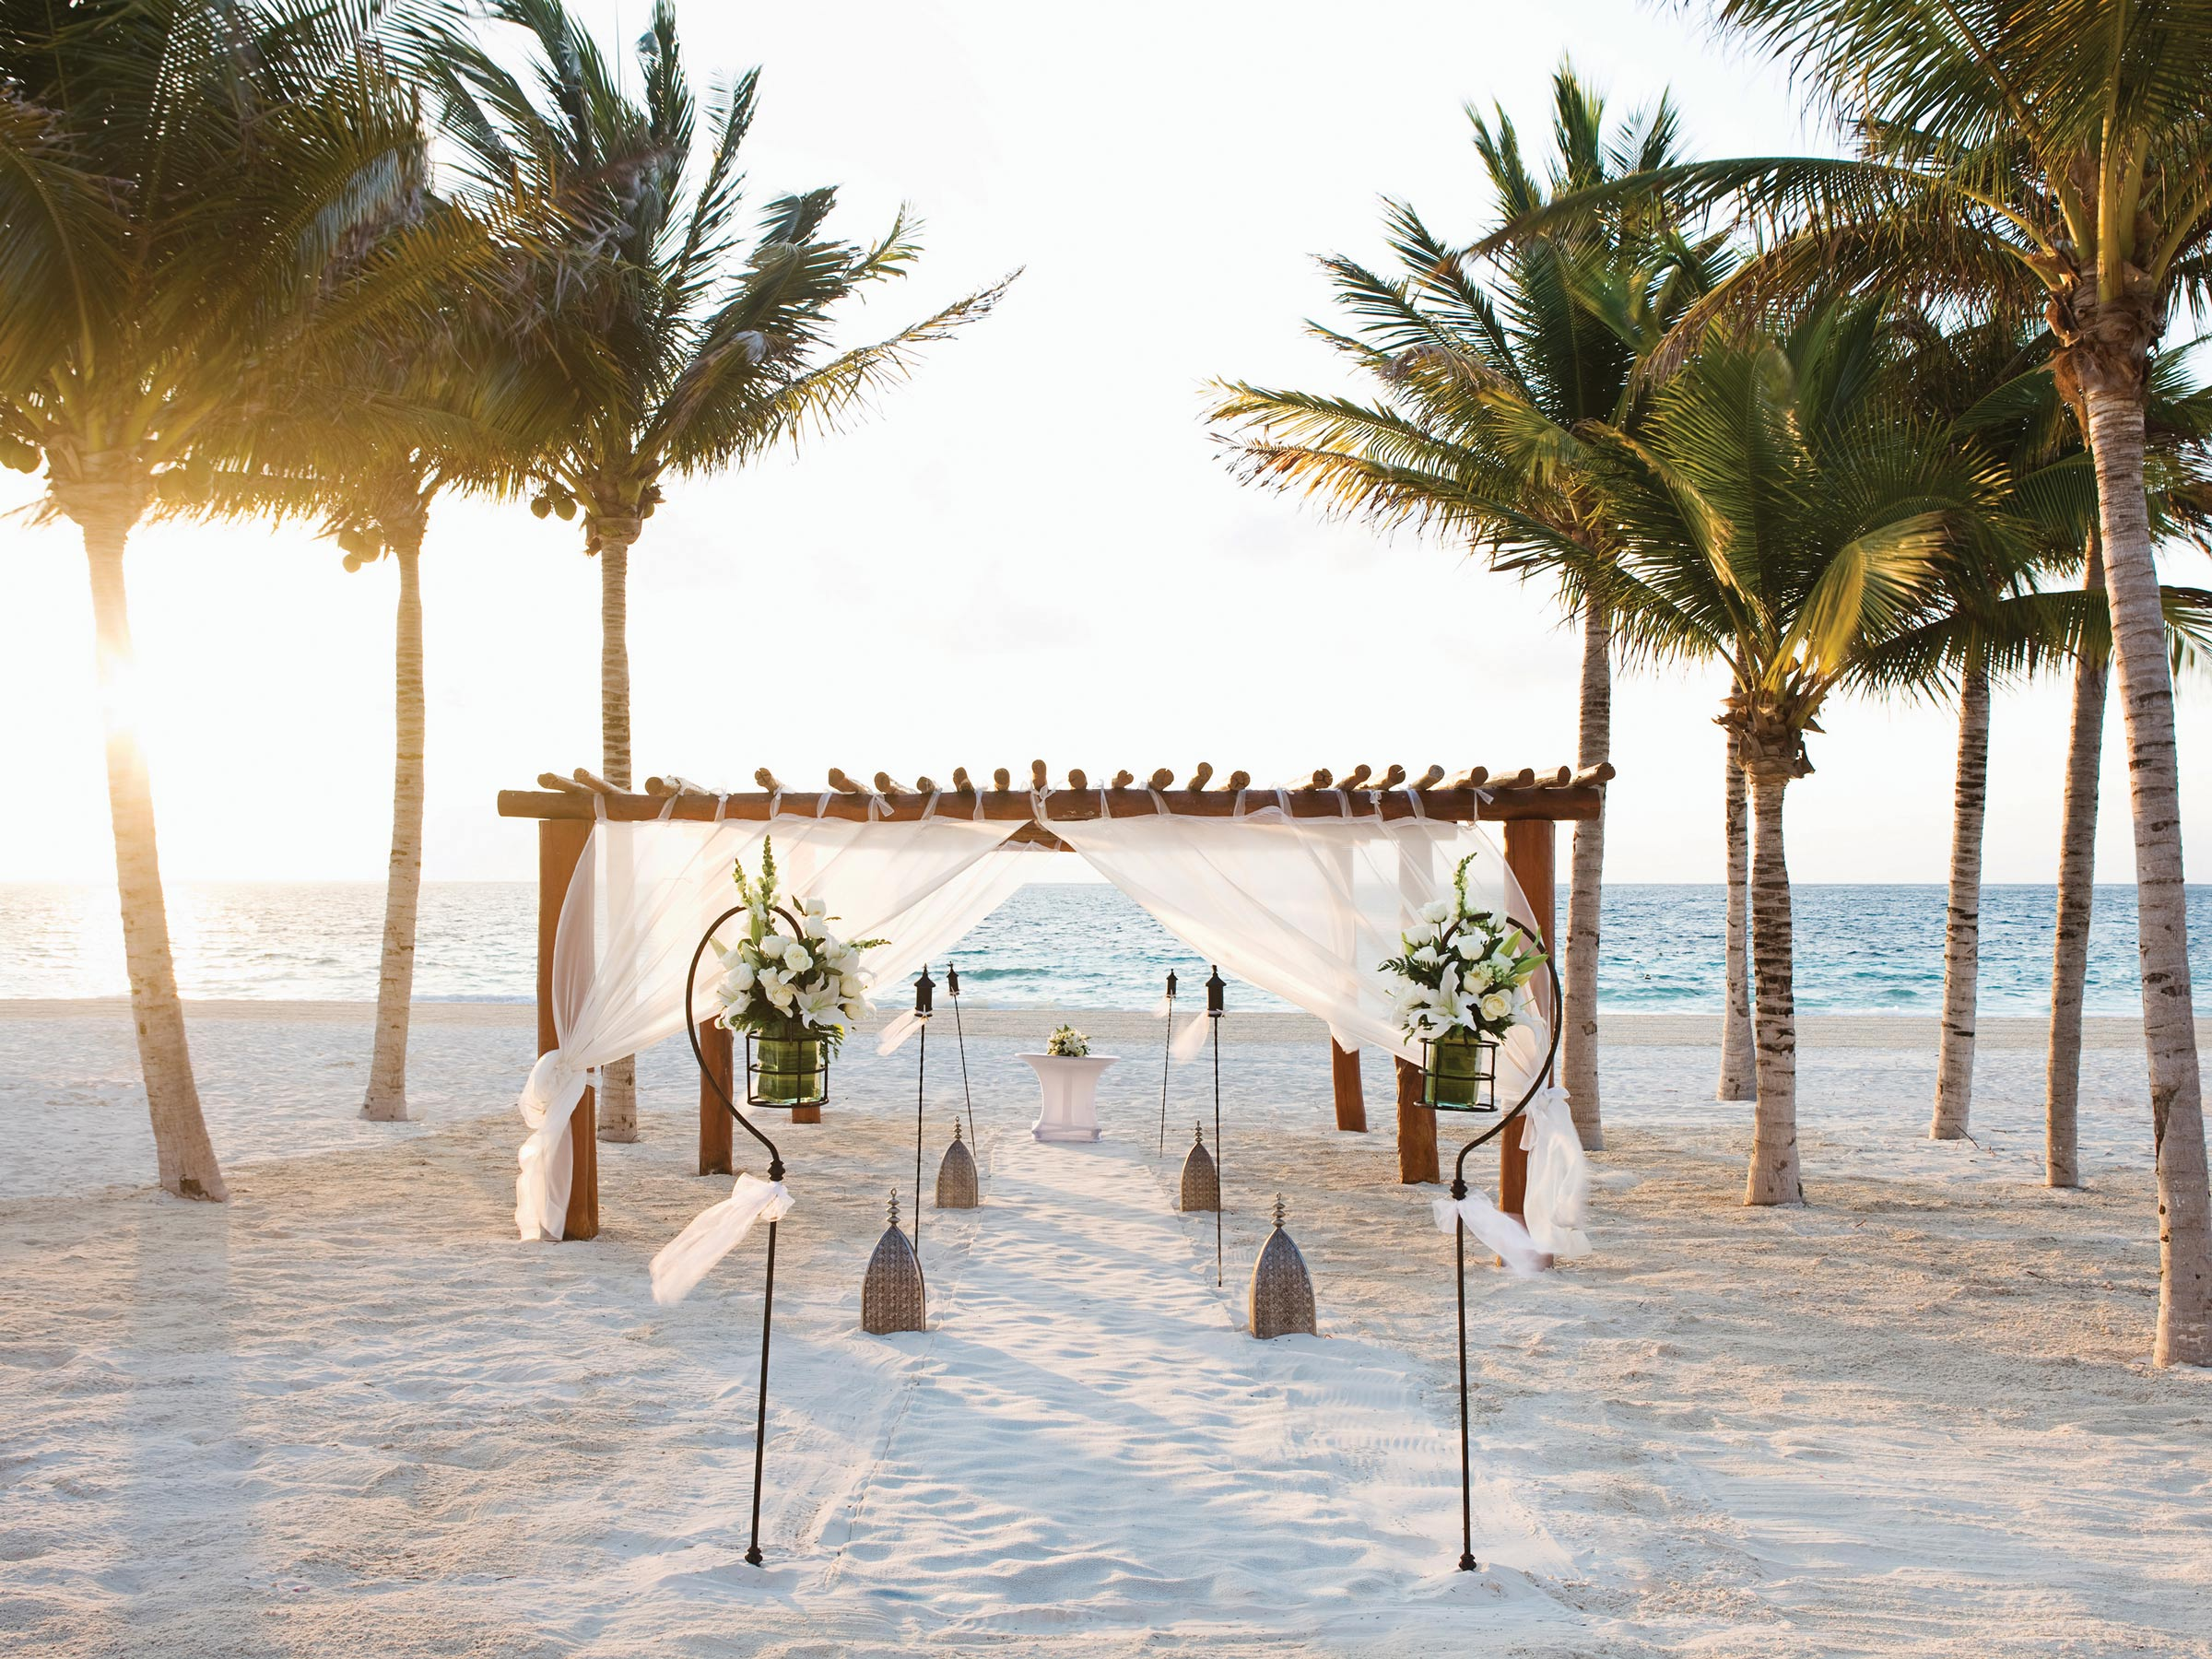 destination wedding at our blissful Playa Mujeres resort